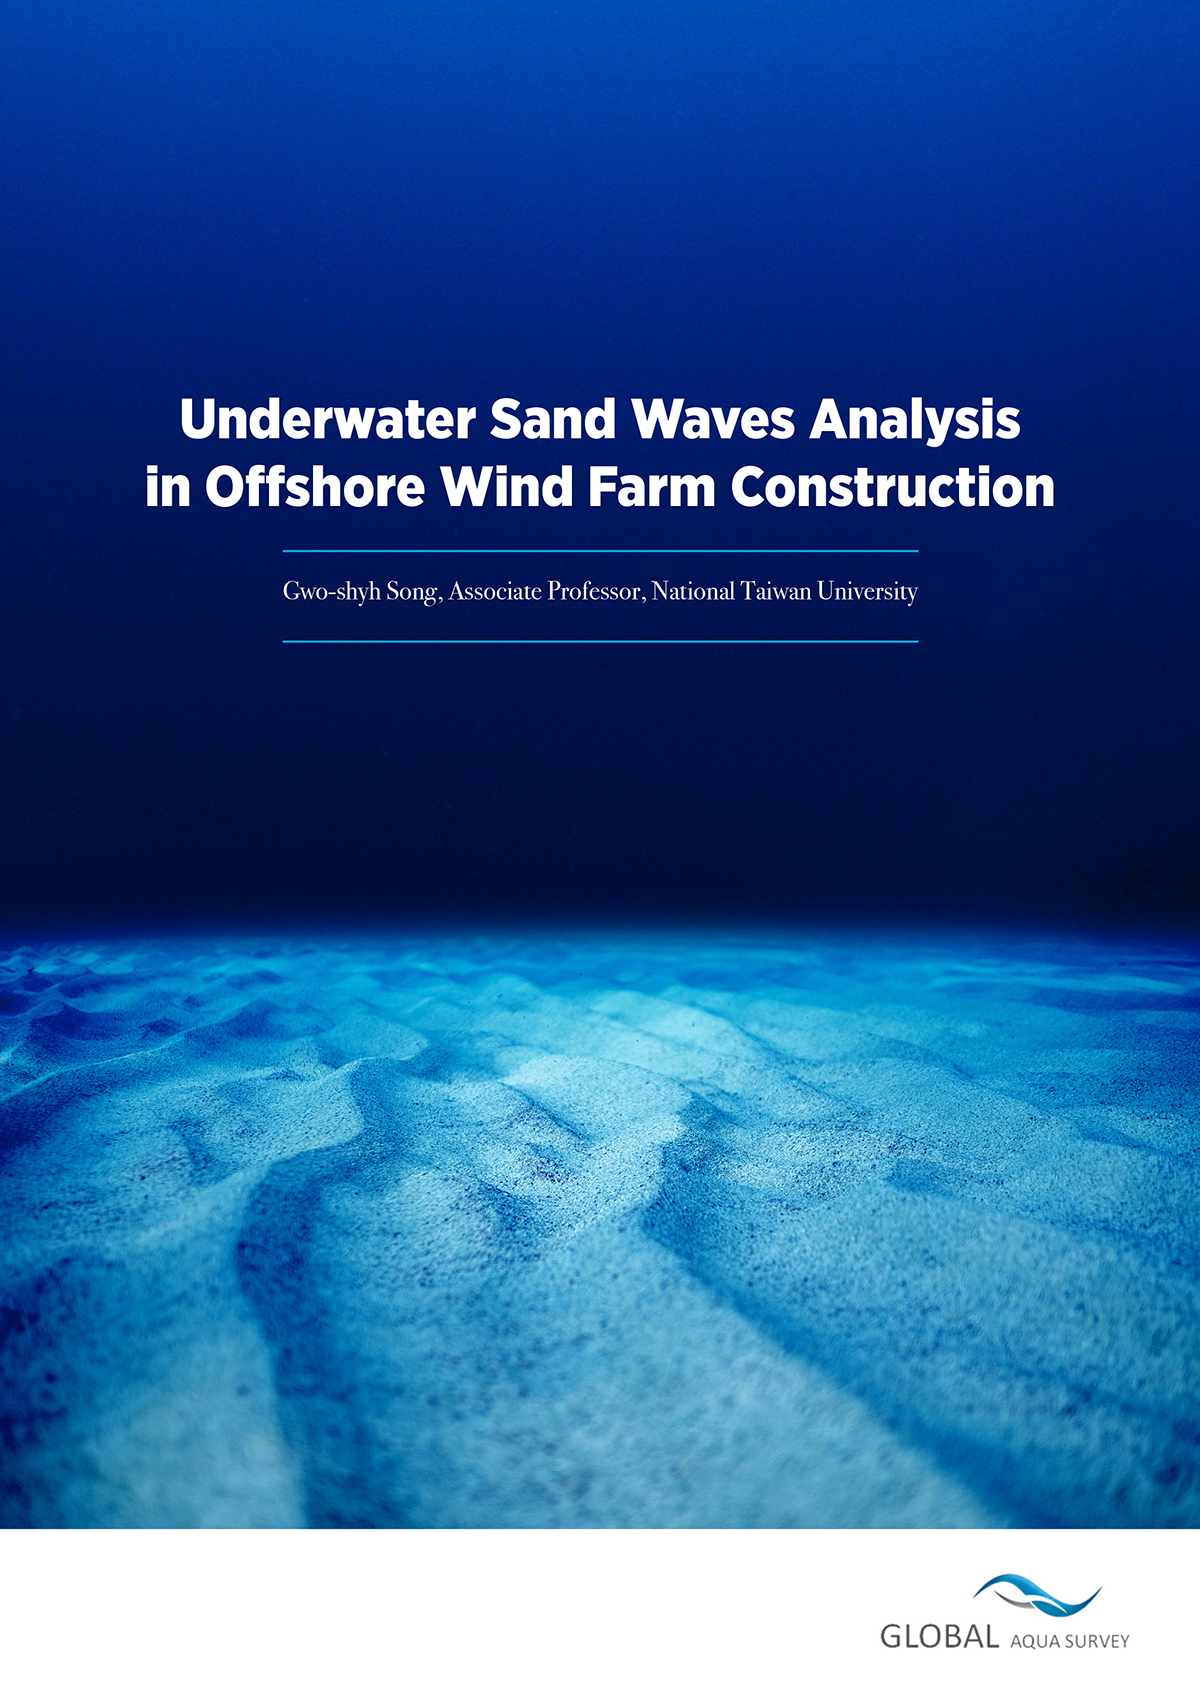 sand waves analysis, offshore wind